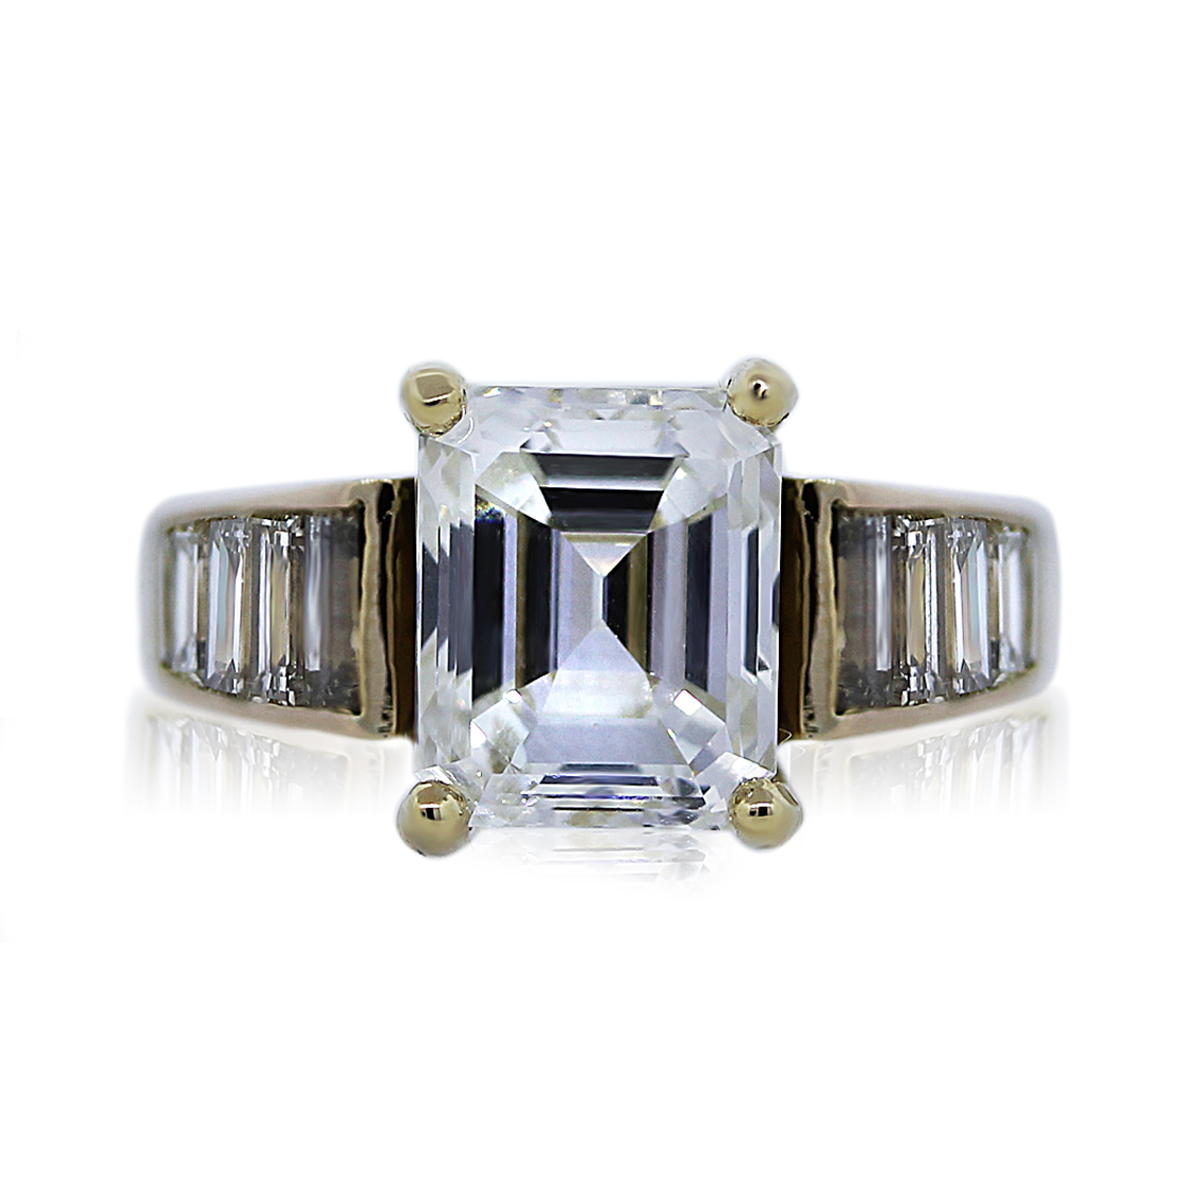 You are Viewing this 3.11ct Emerald Cut Engagement Ring